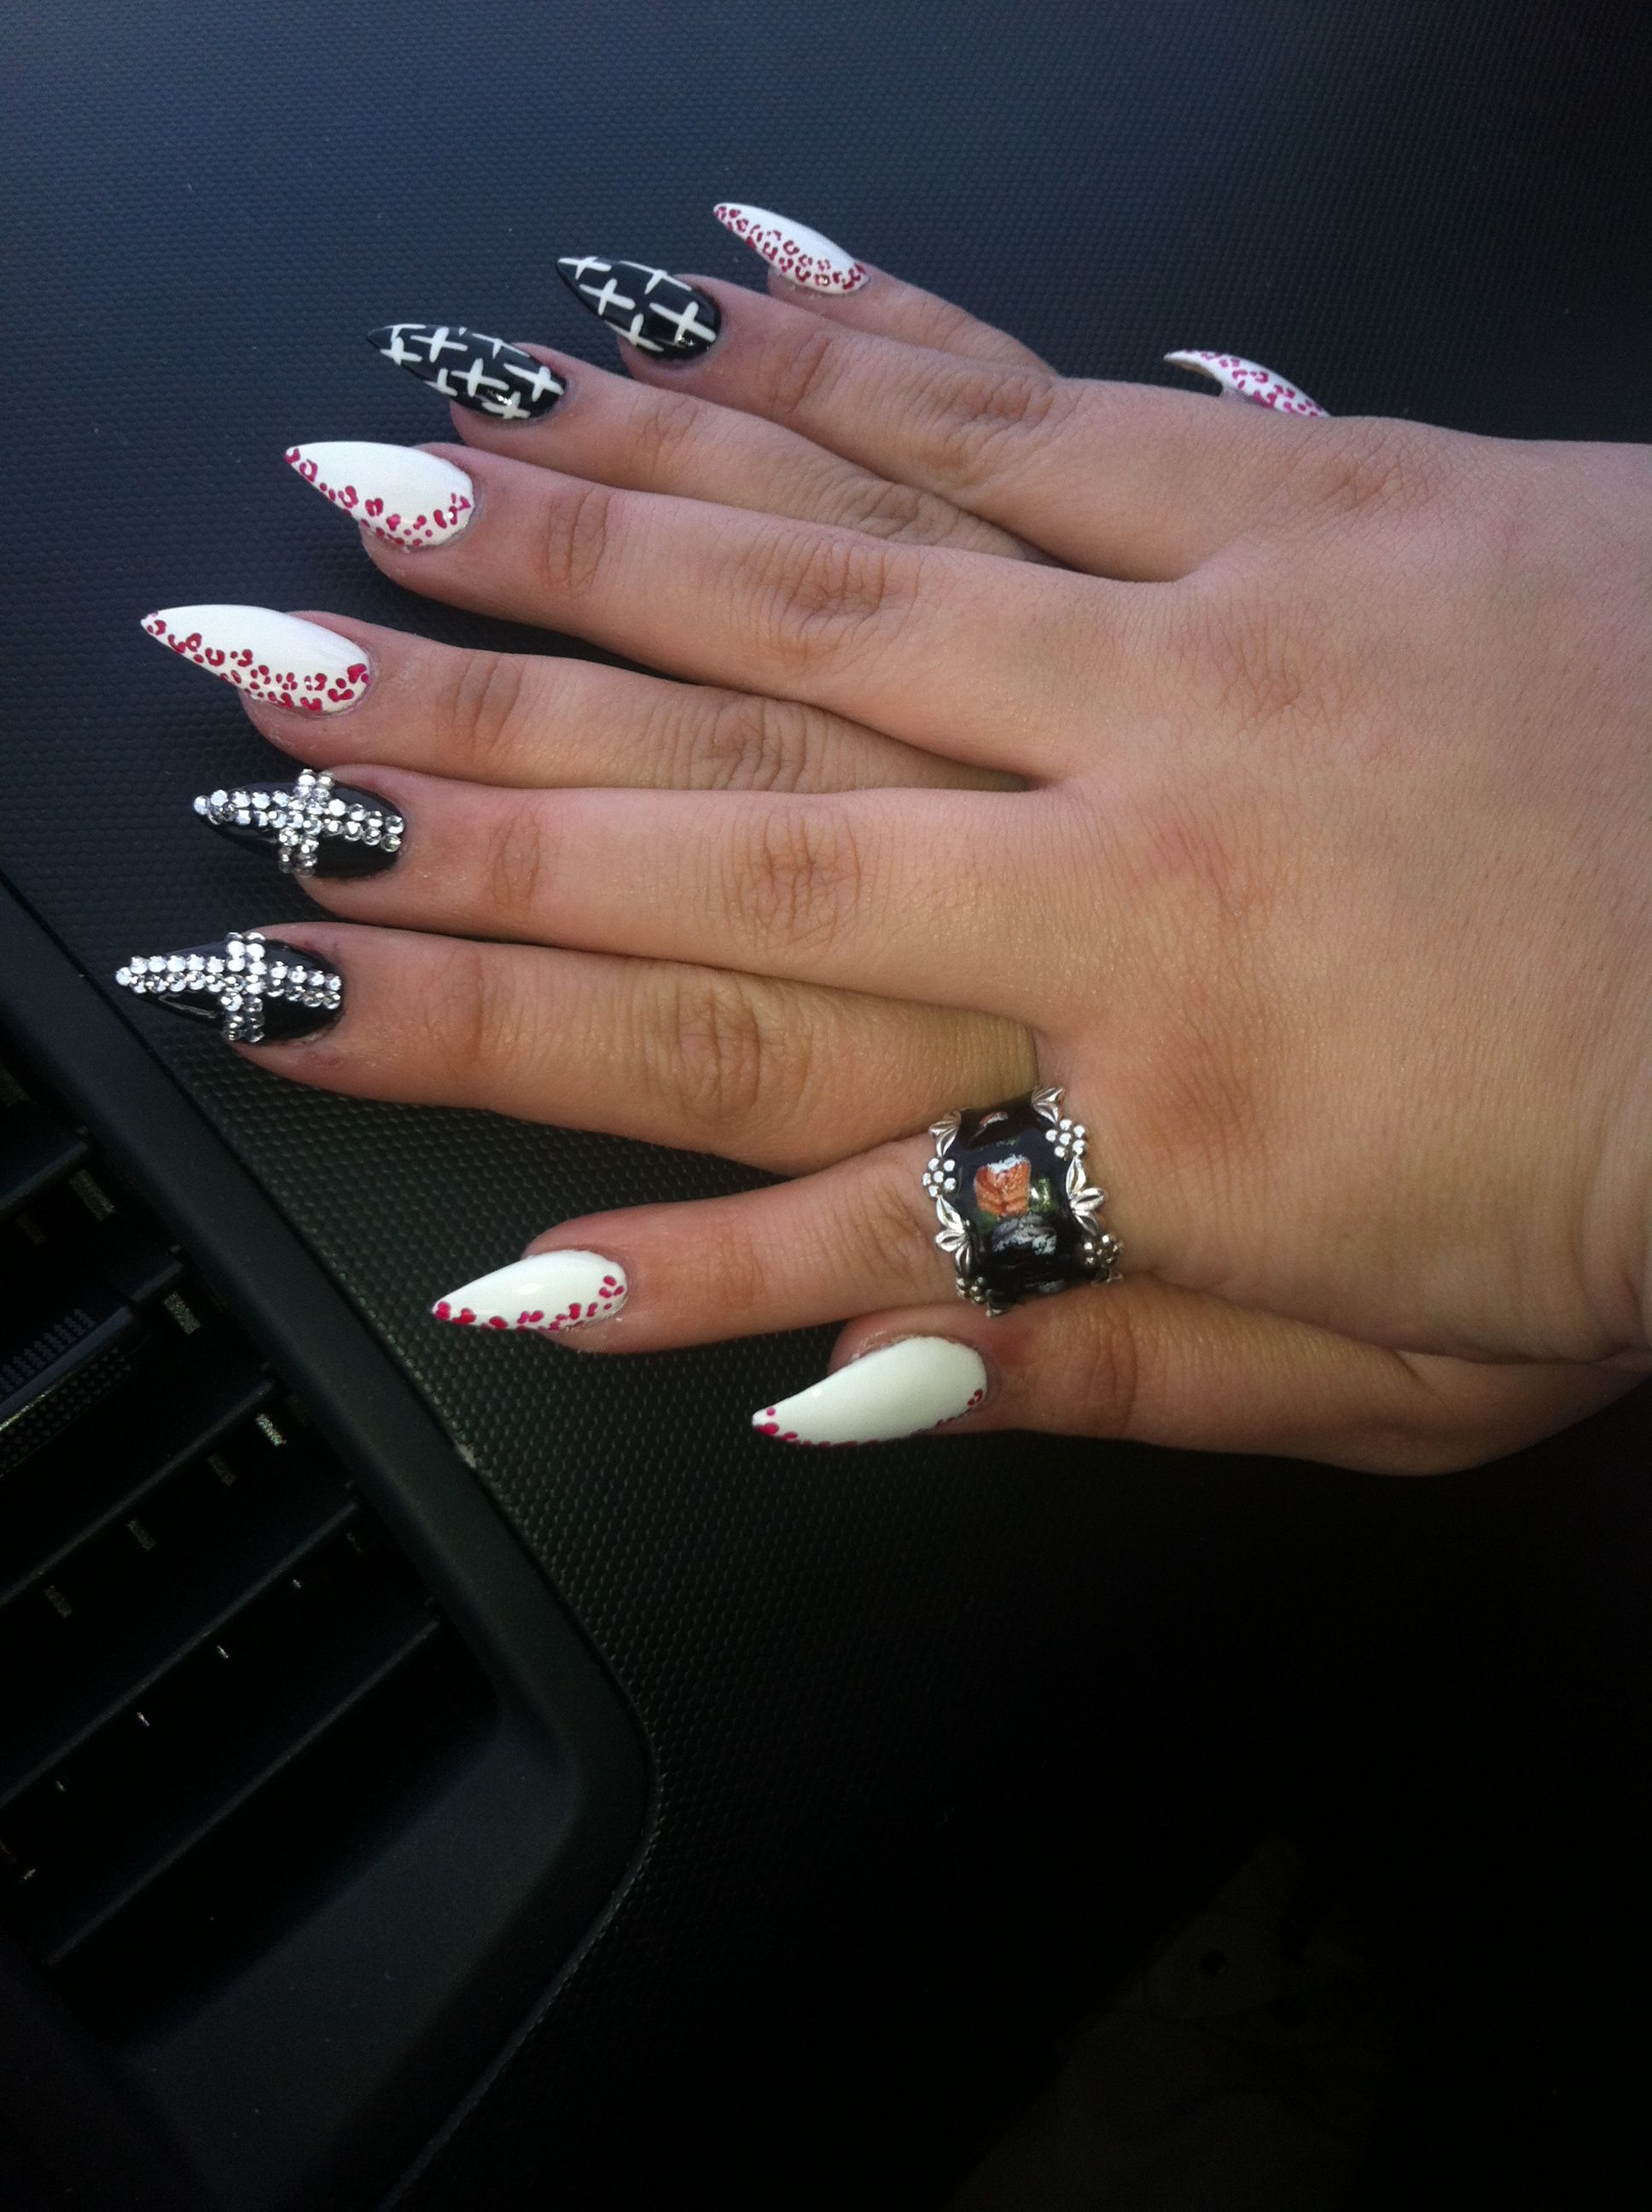 i hate pointed nails but lovee these